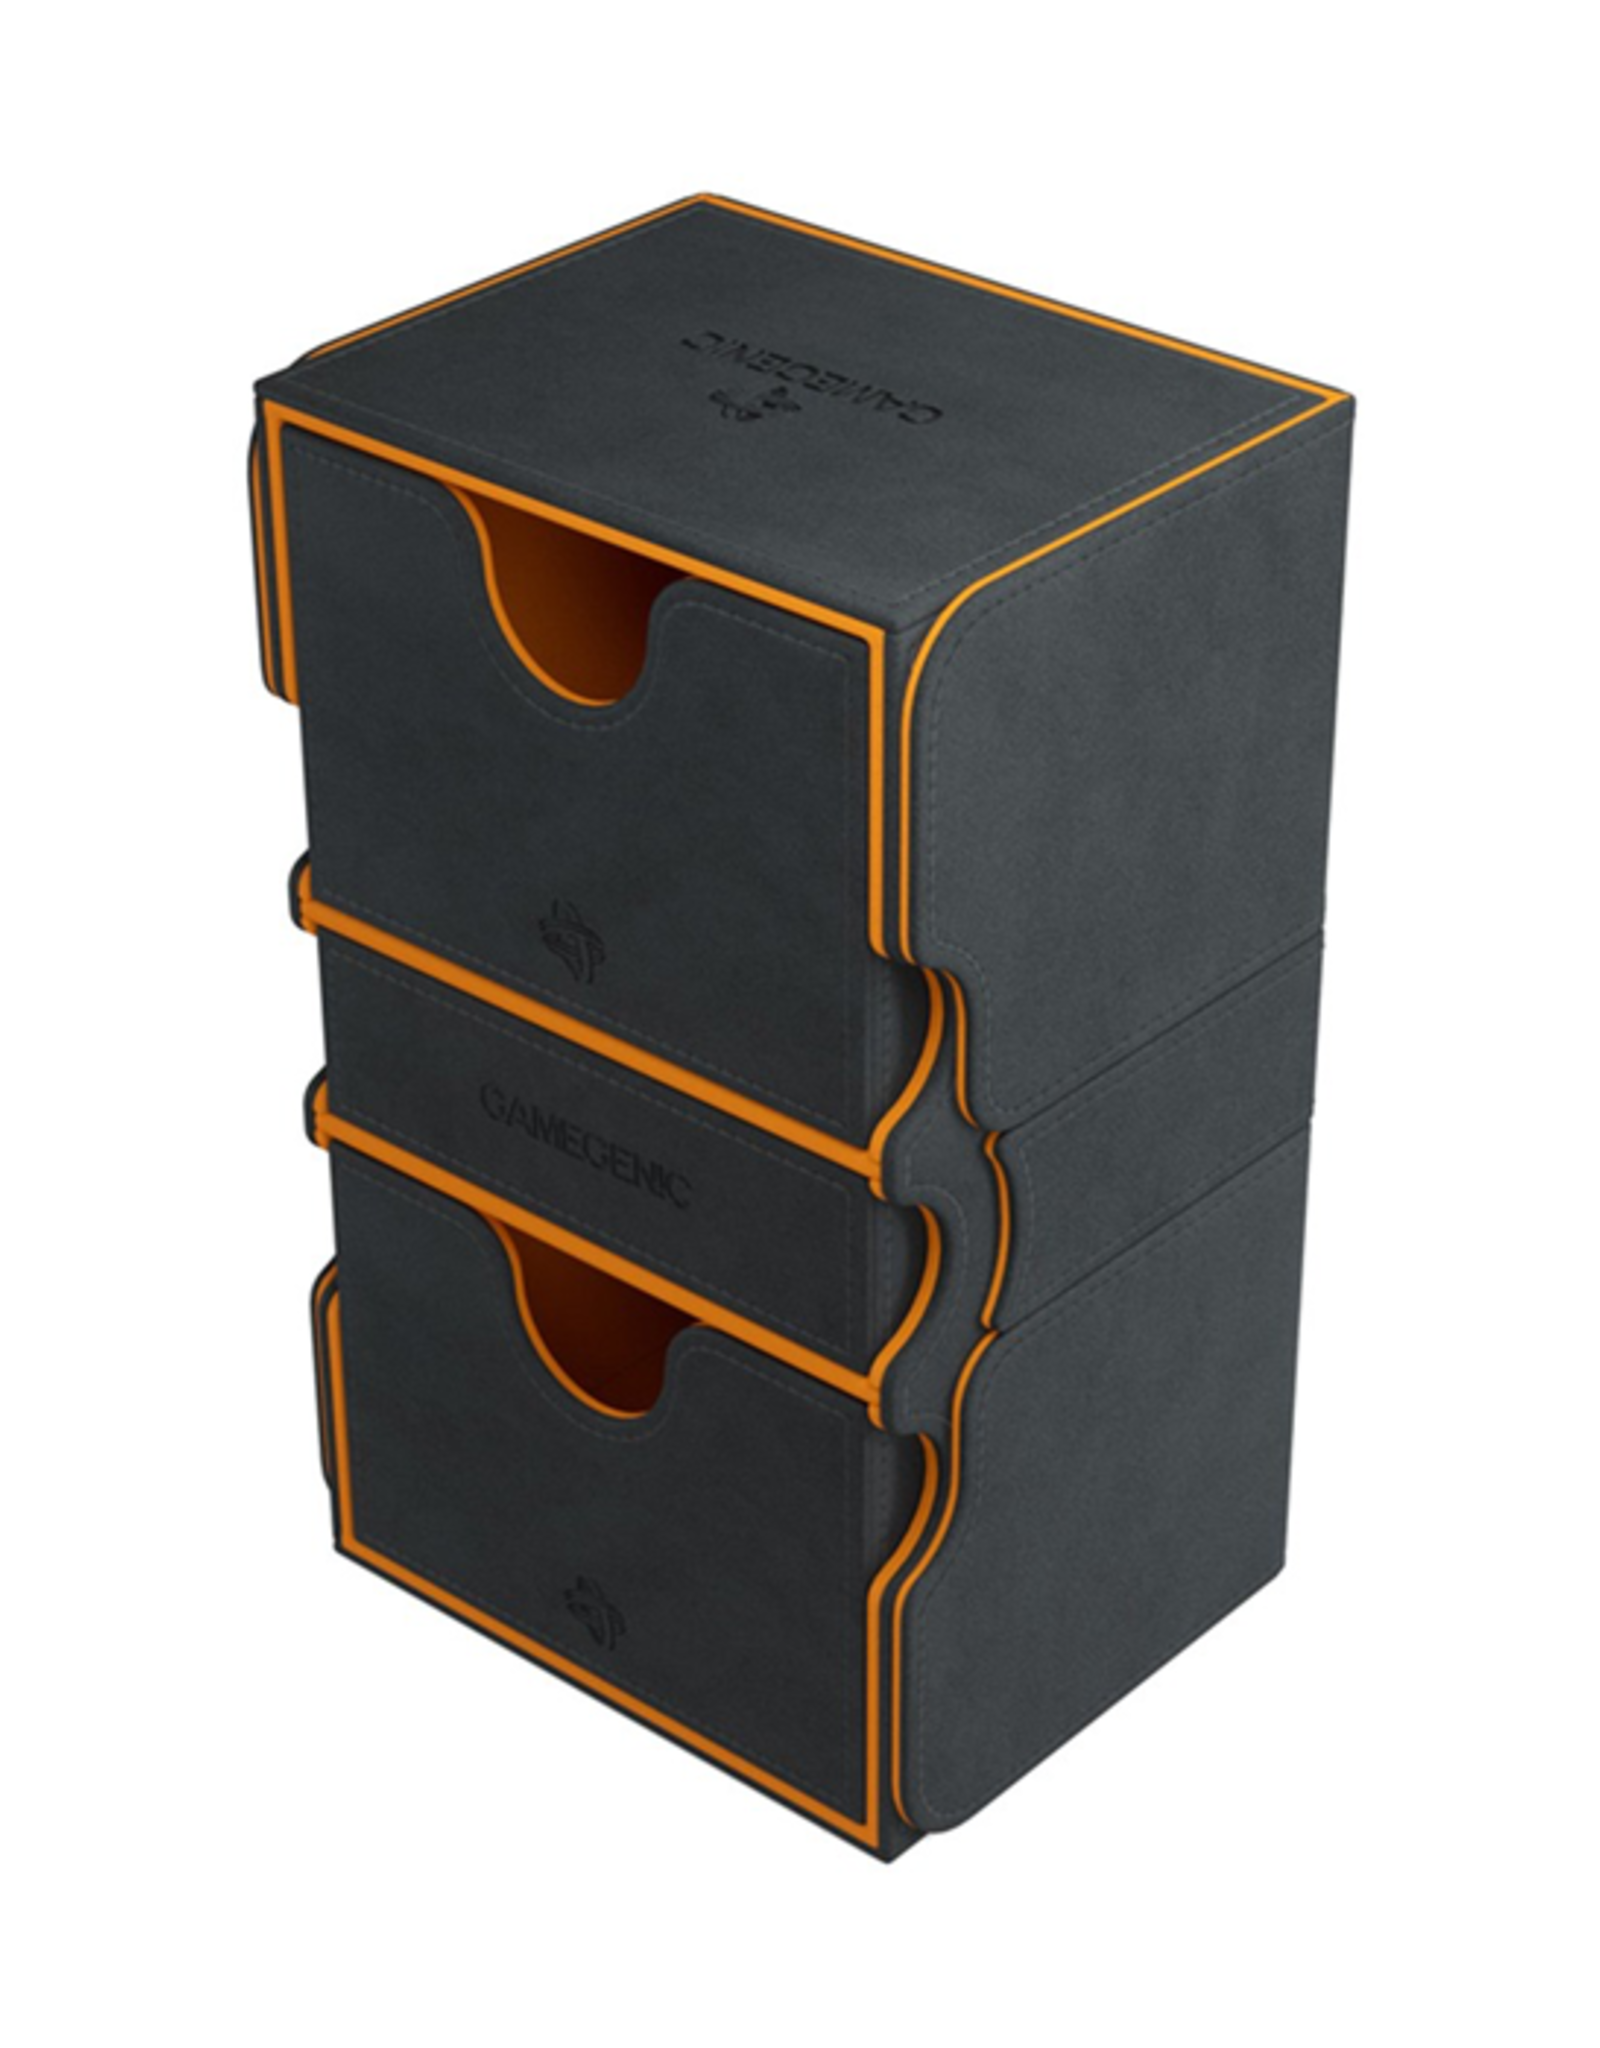 Gamegenic Gamegenic: Deck Box - Stronghold 200+ - XL - 2021 Edition